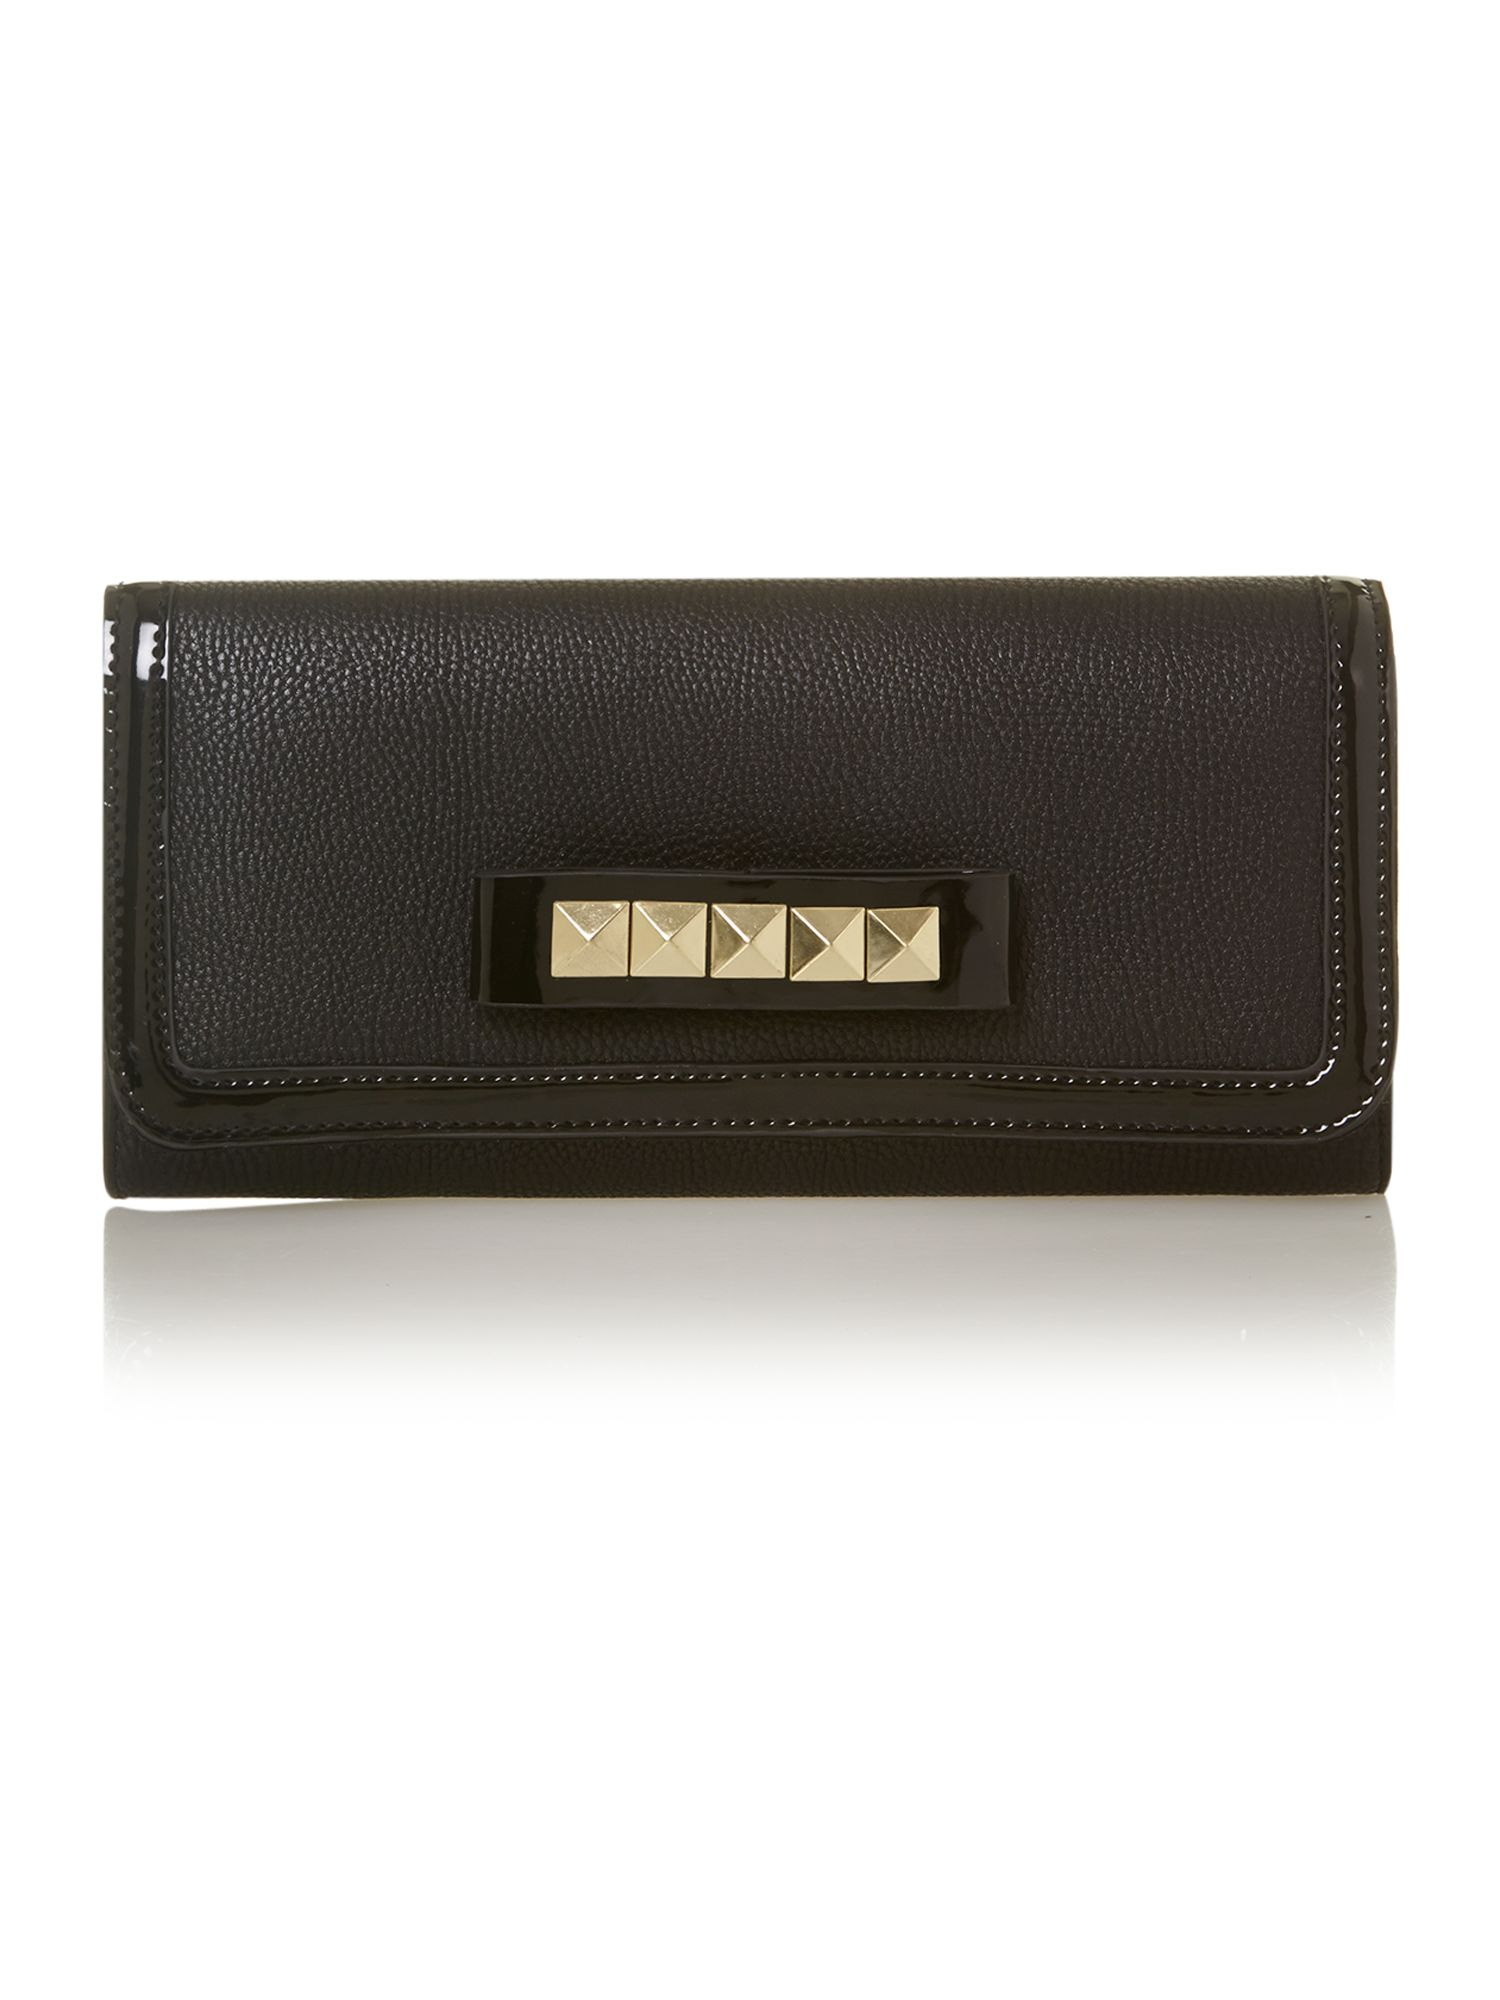 Giselle clutch bag